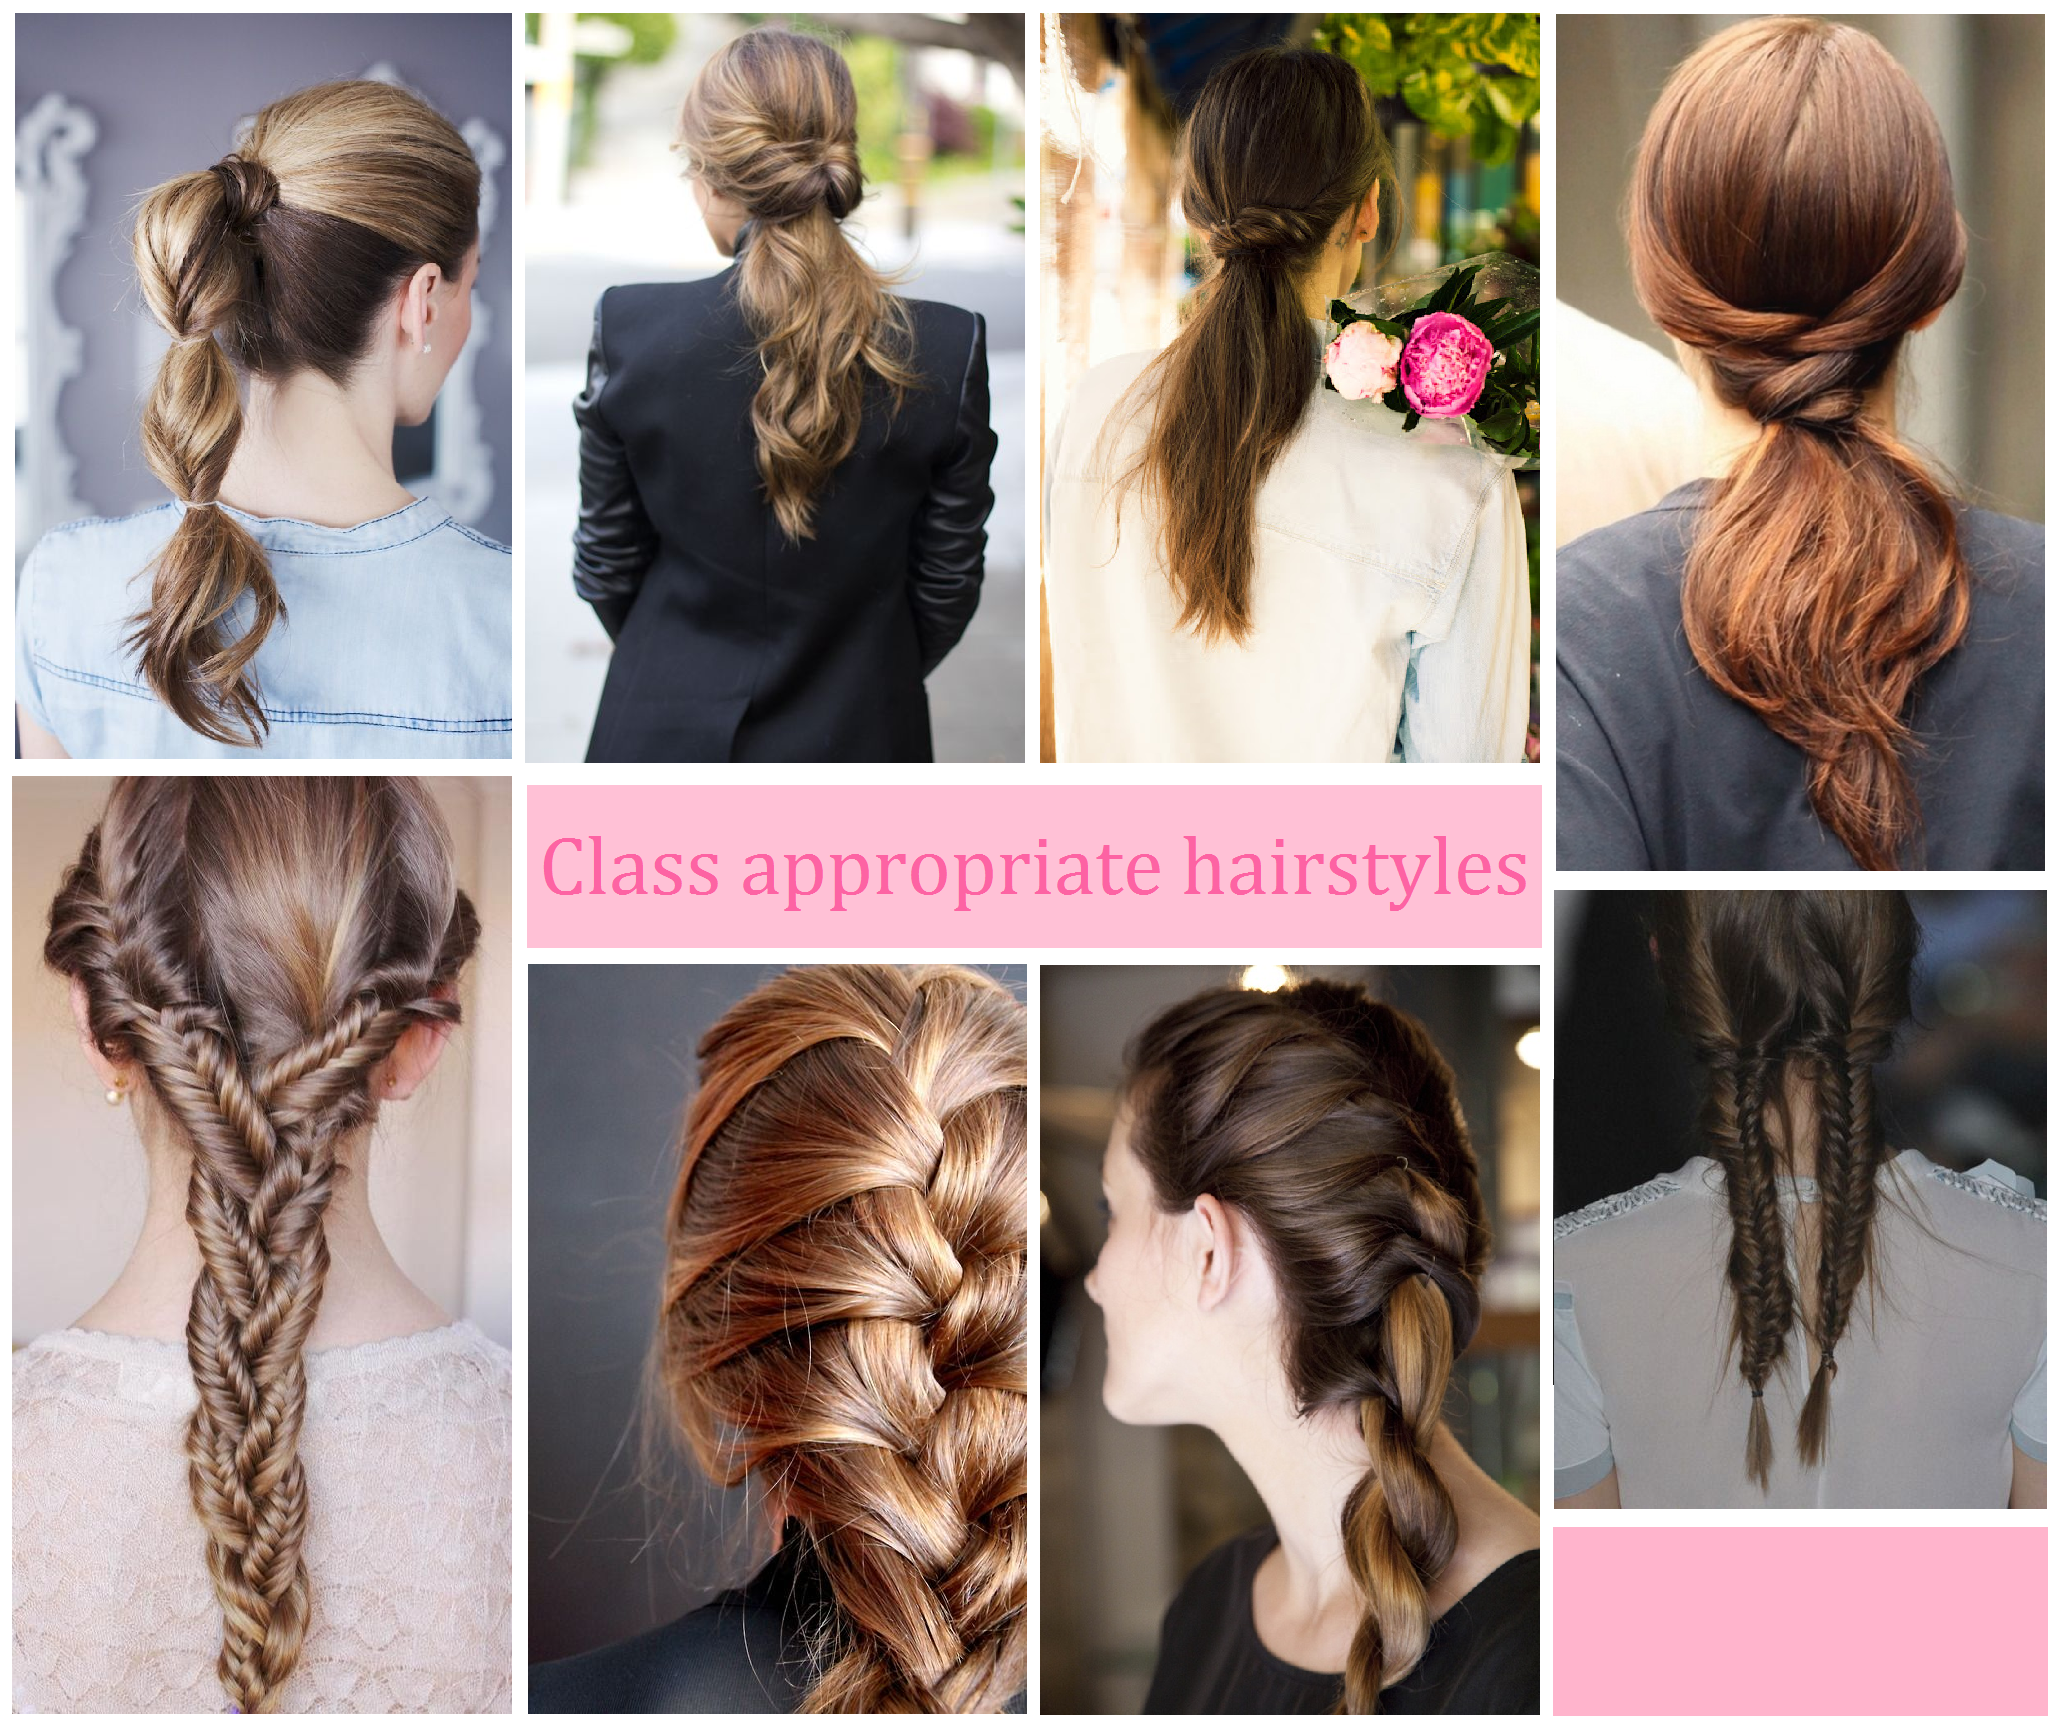 Hairstyles for long hair for school google search hairumakeup in